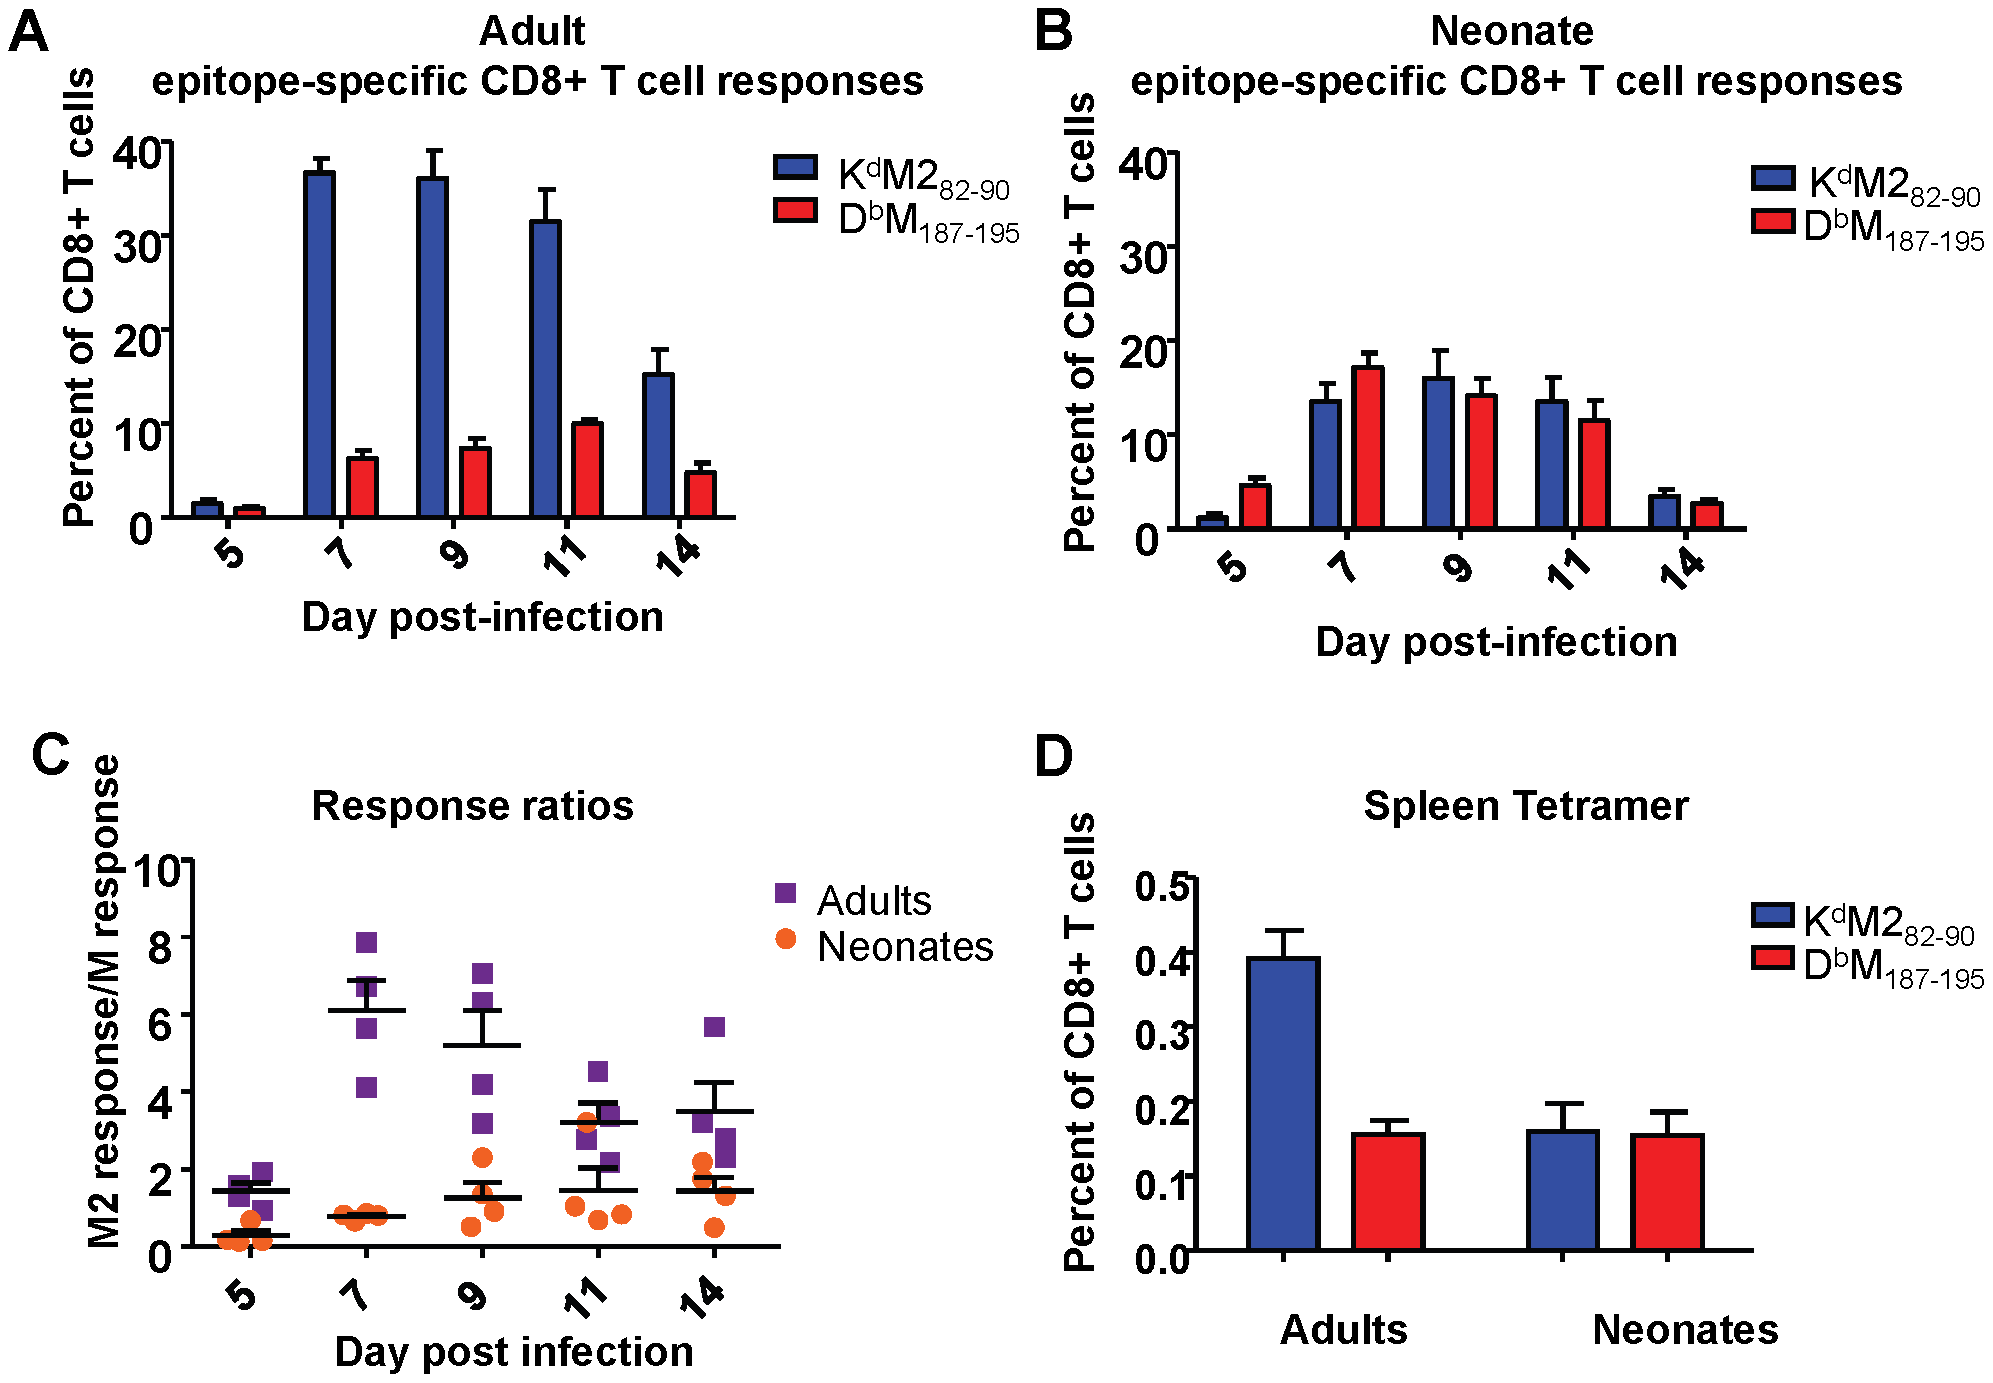 RSV epitope-specific CD8+ T cell responses during acute infection and memory.